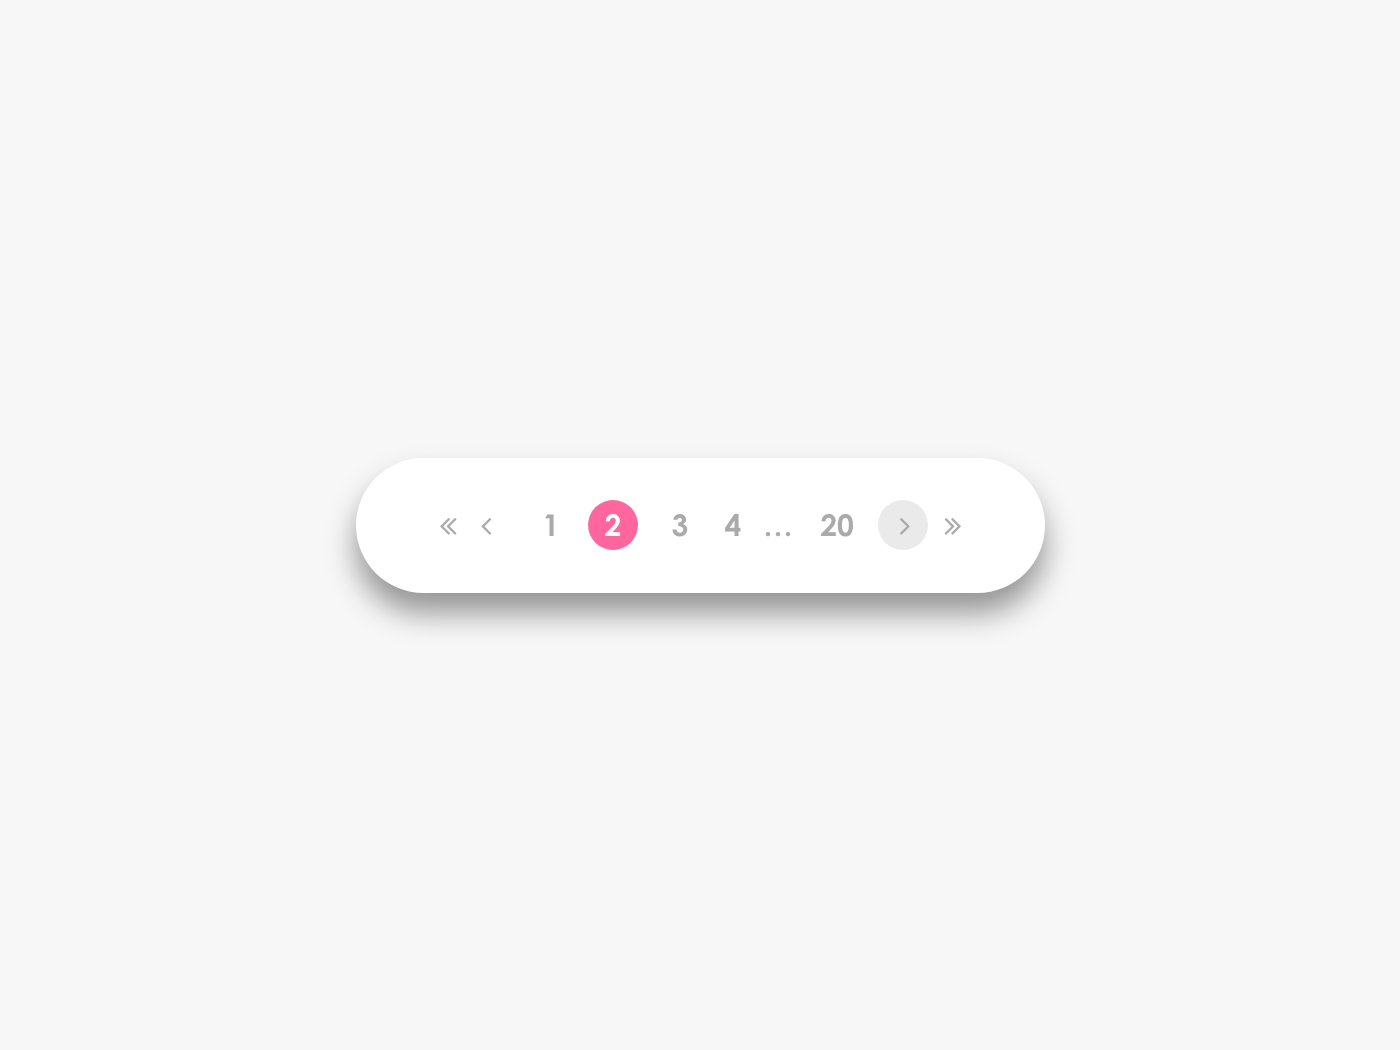 Daily UI Challenge #085 Pagination daily ui daily challange daily 100 daily 100 challenge mobile design app ui navigation paging pages pagination day085 dailyui